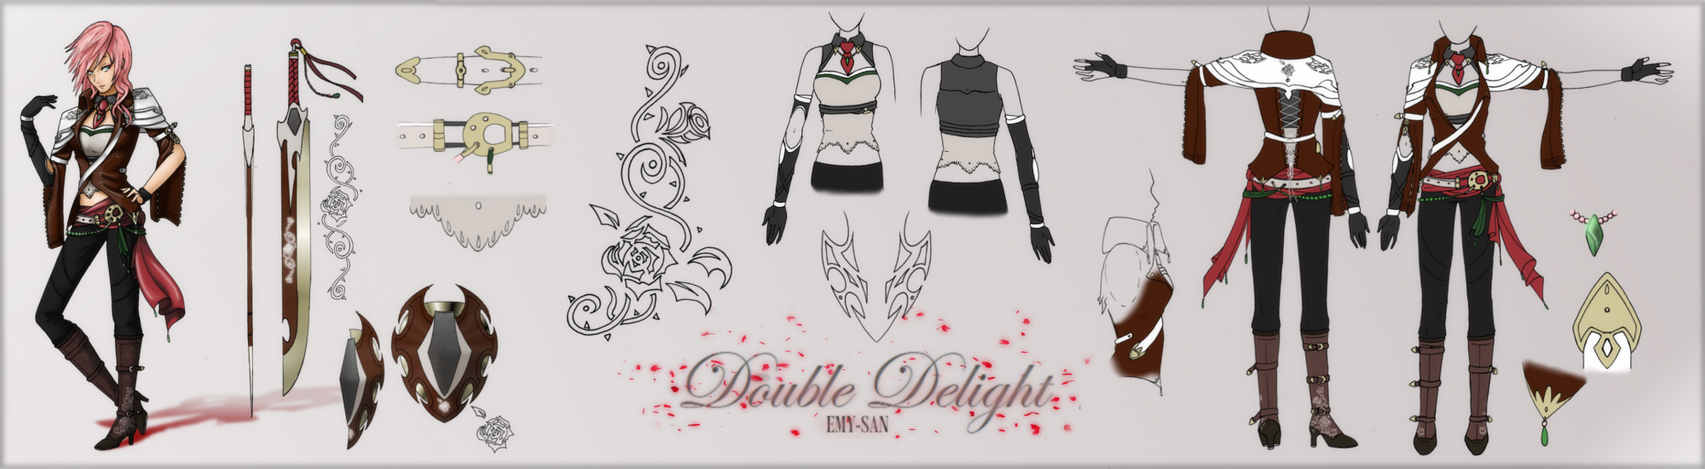 .:Double Delight:. Lightning Returns contest entry by Emy-san